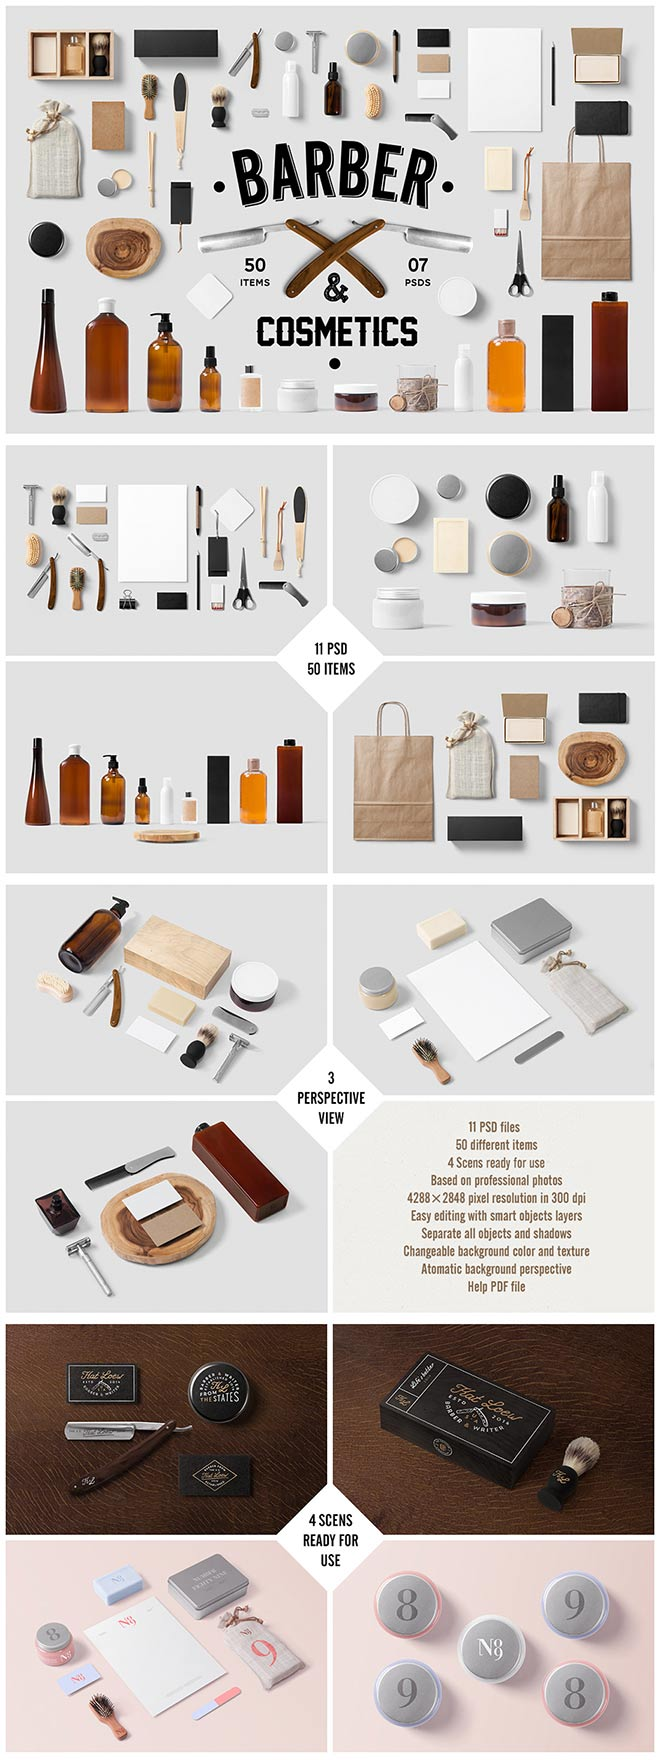 Barber and Cosmetics Branding Mock-Up